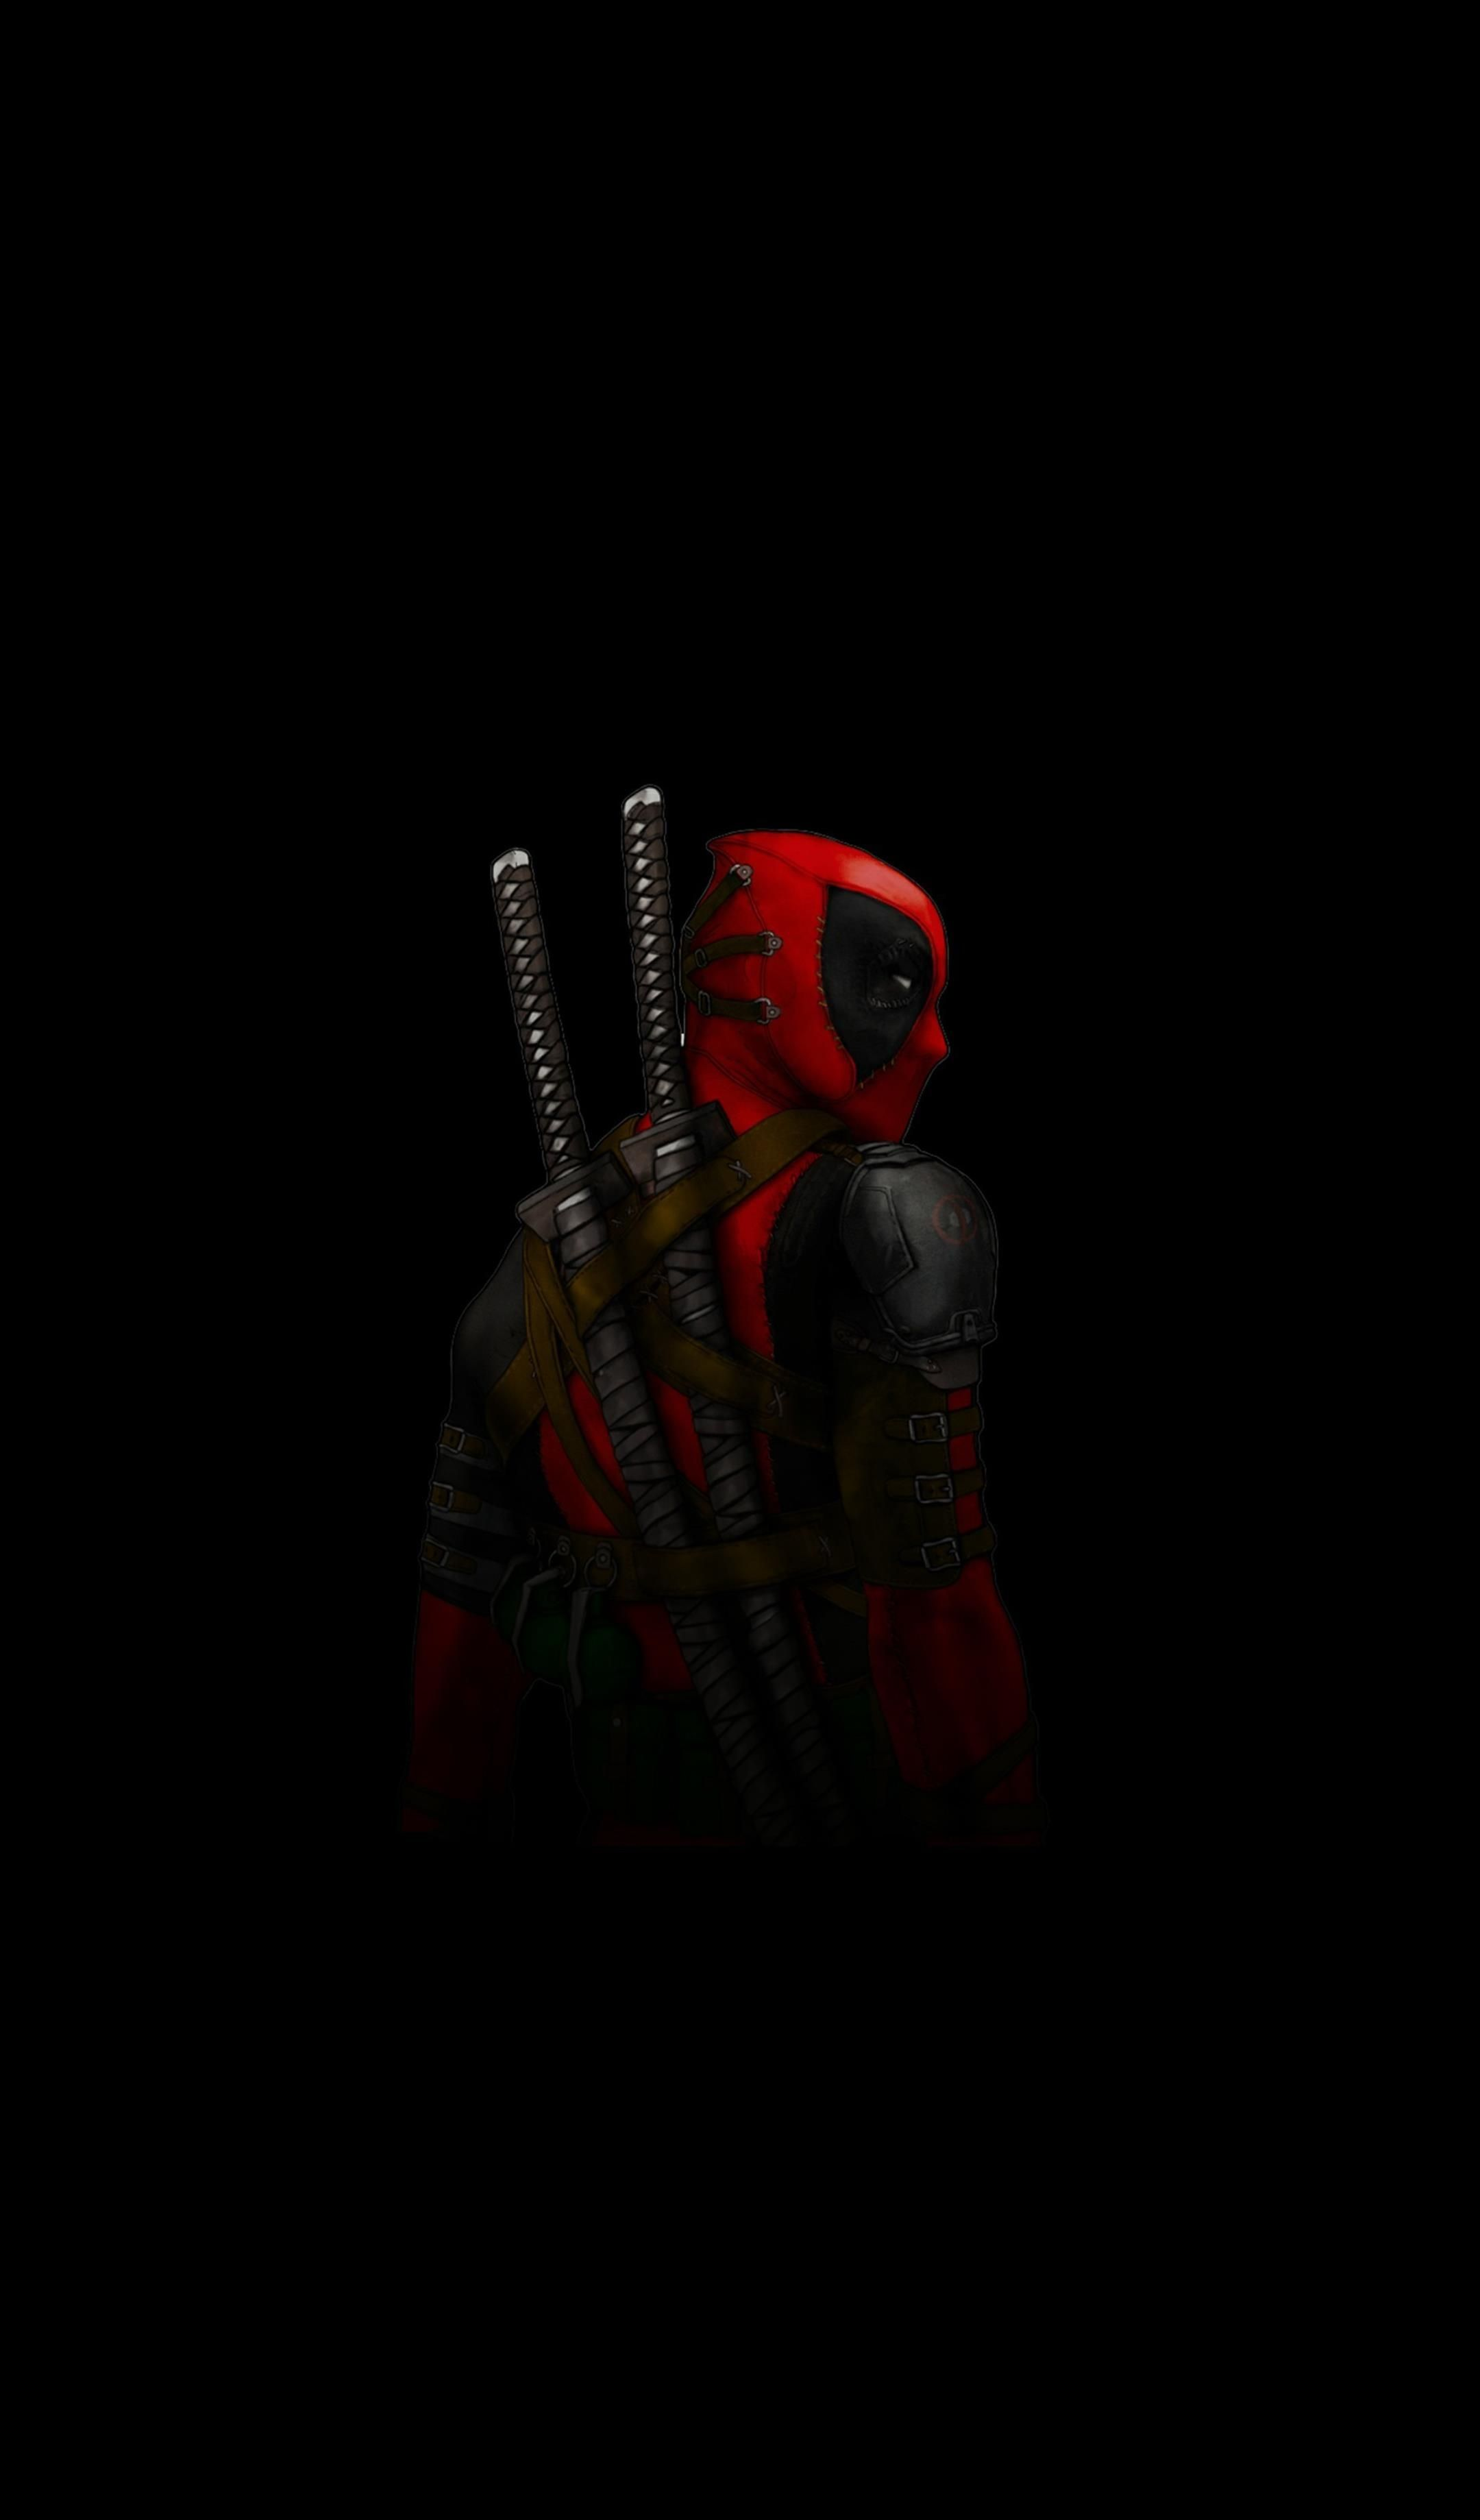 Deadpool Wallpapers Deadpool wallpaper Deadpool wallpaper